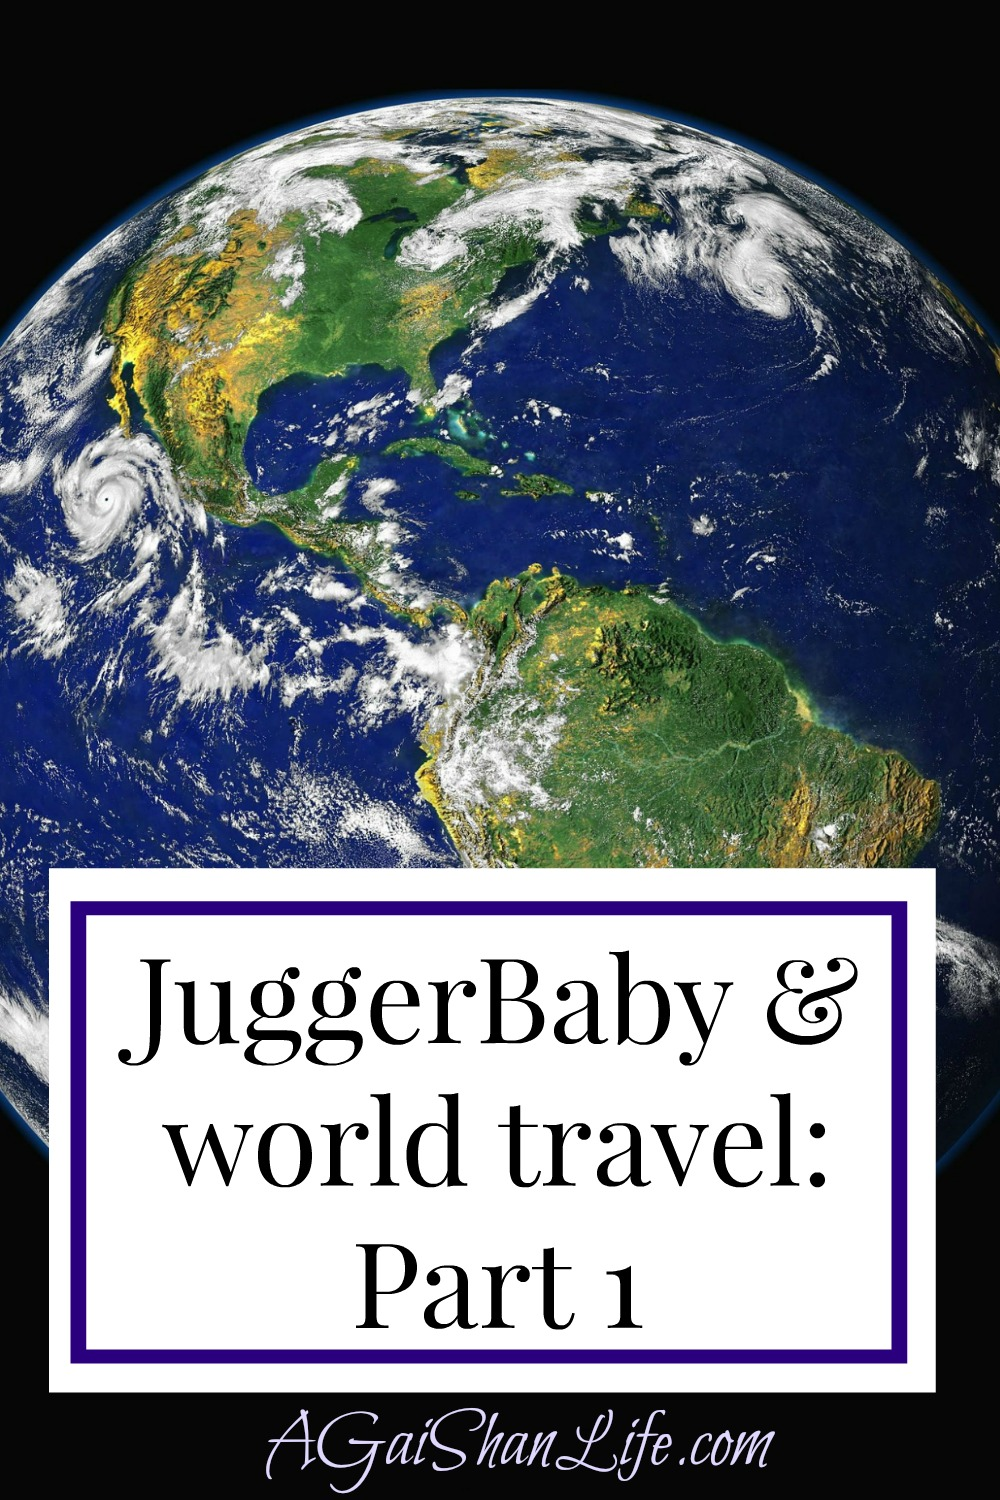 Going international with JuggerBaby: Part 1